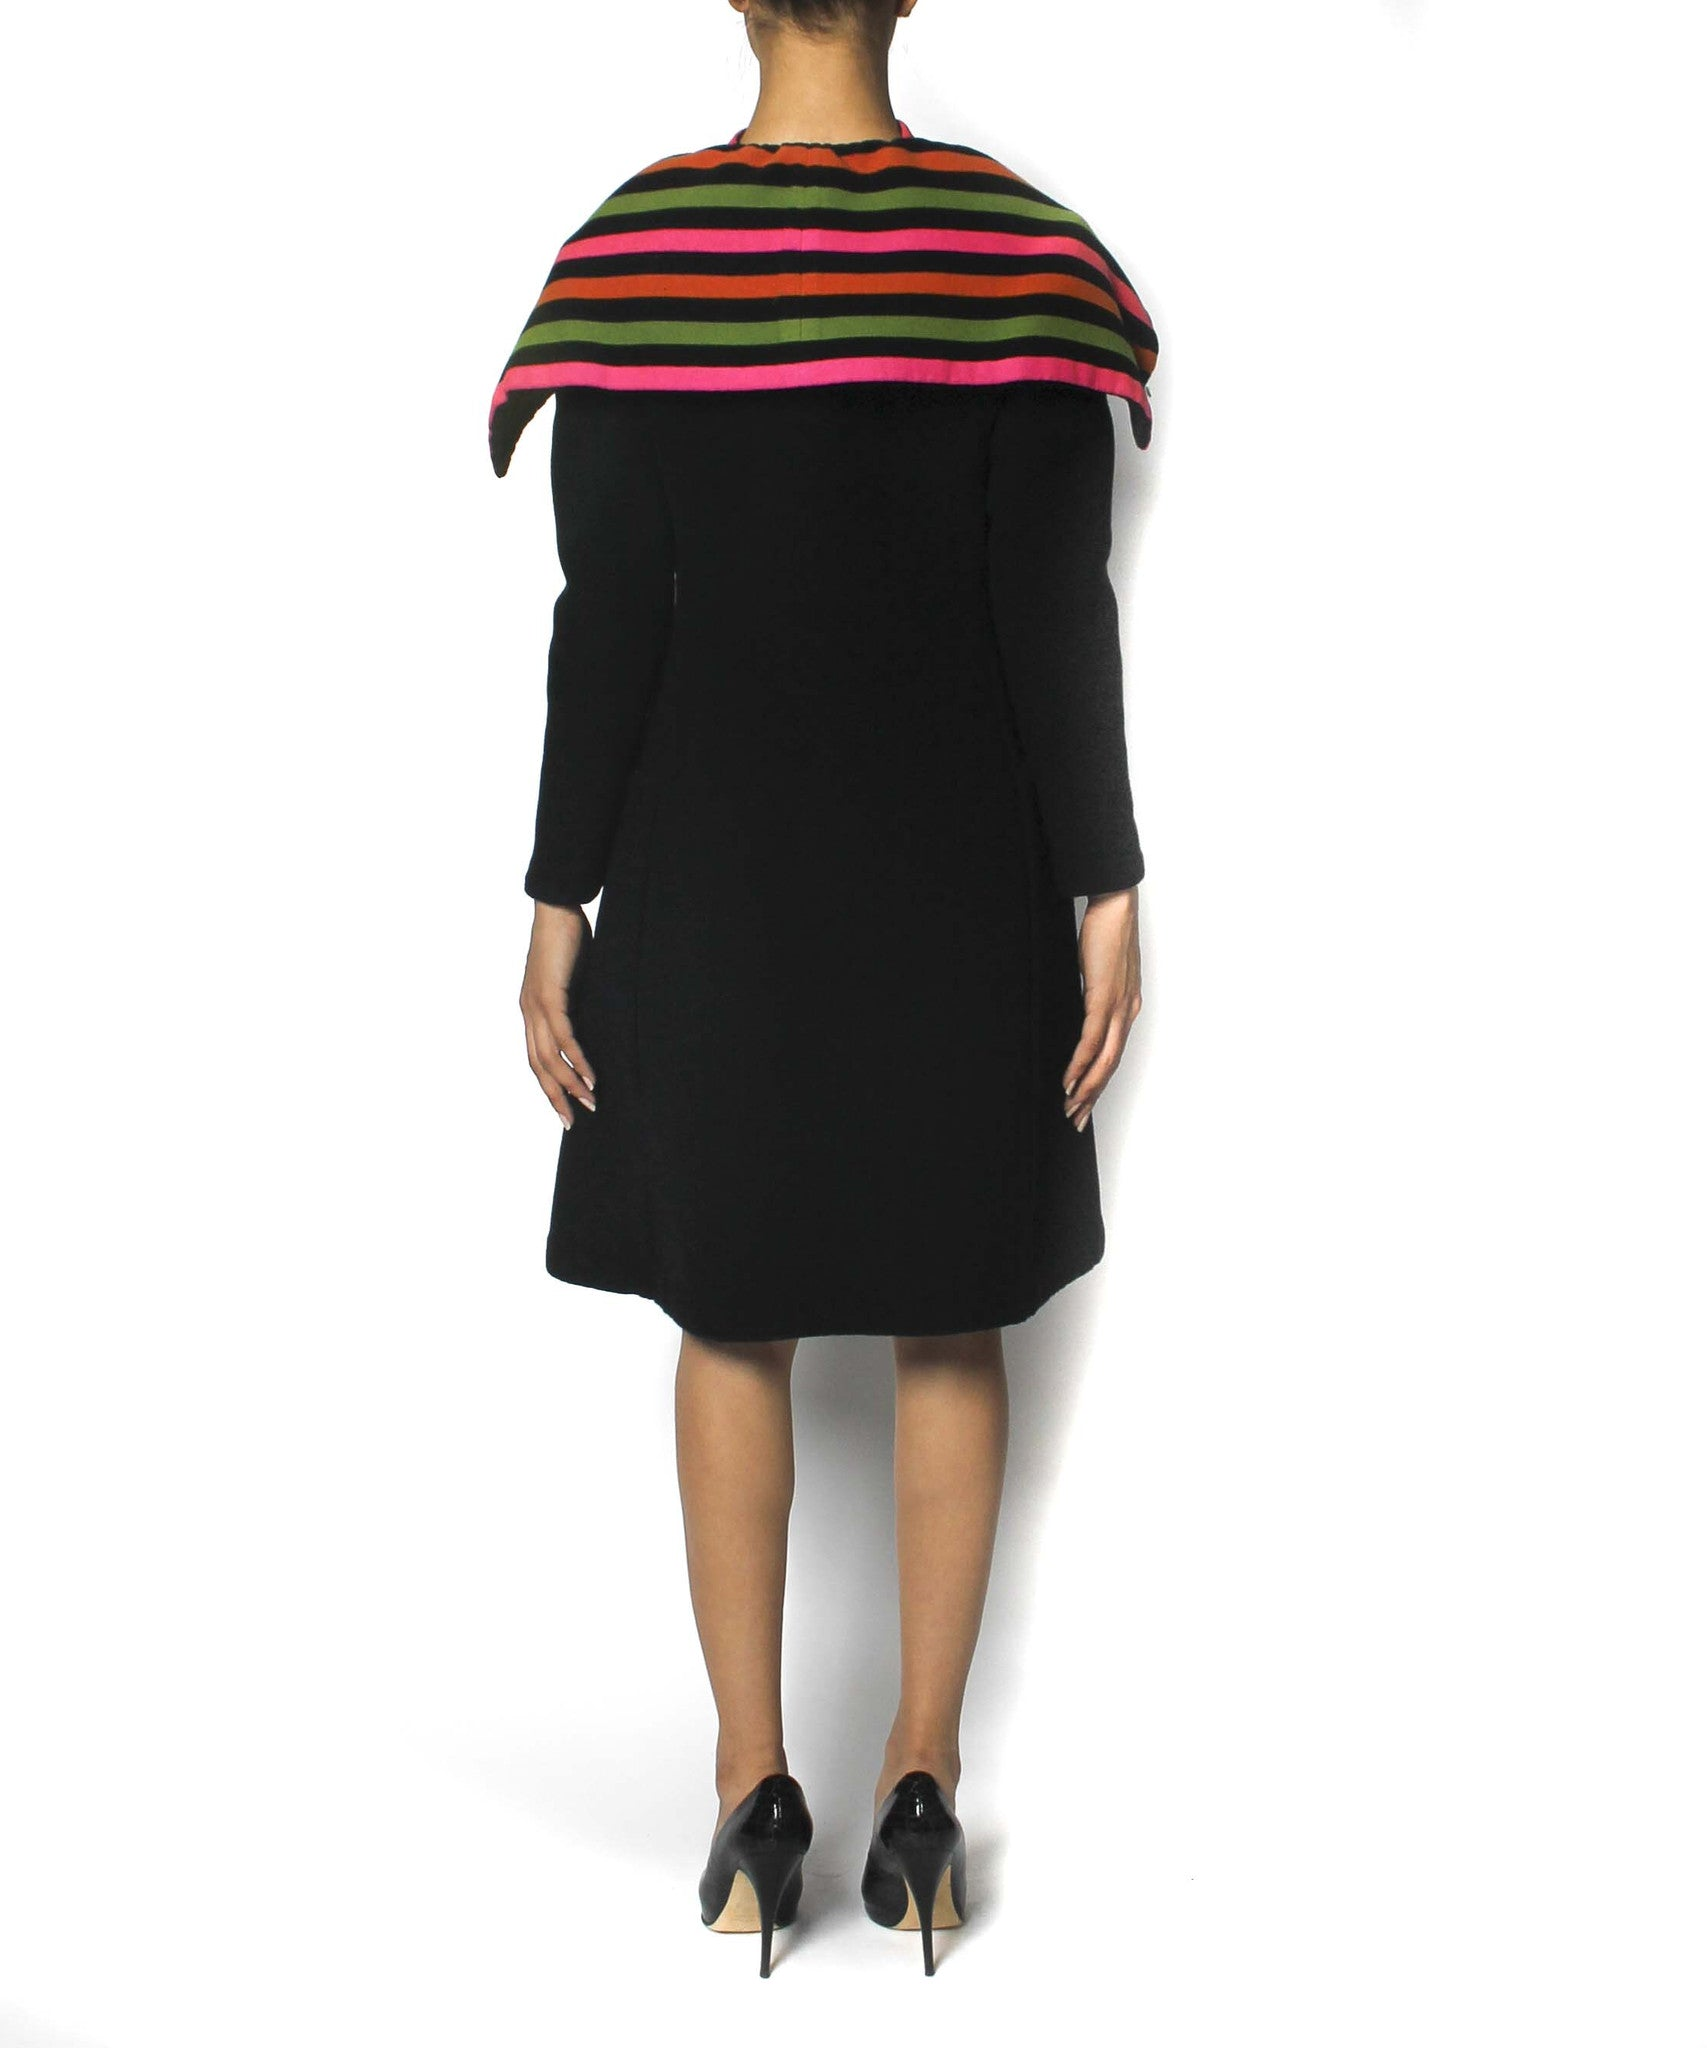 Pauline Trigère Black with Multicolor Stripes Coat and Dress - C.Madeleine's